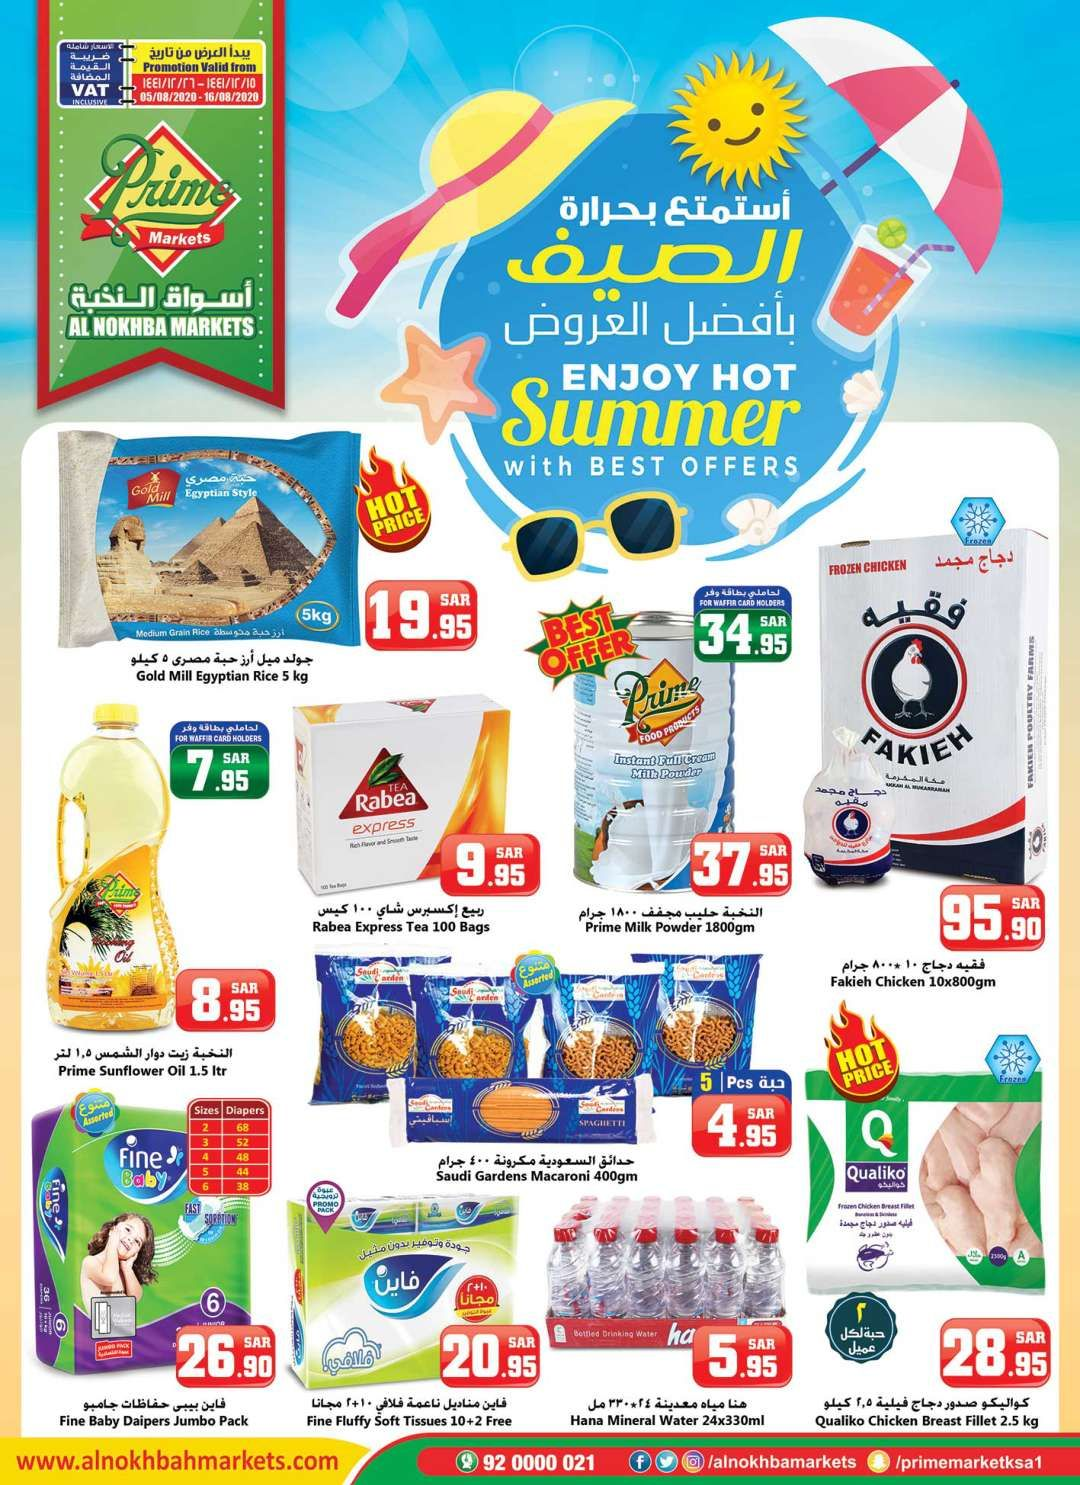 Pin By Soouq Sudia On عروض الثلاجة العالمية In 2020 Lollies Frosted Flakes Cereal Box Hot Summer